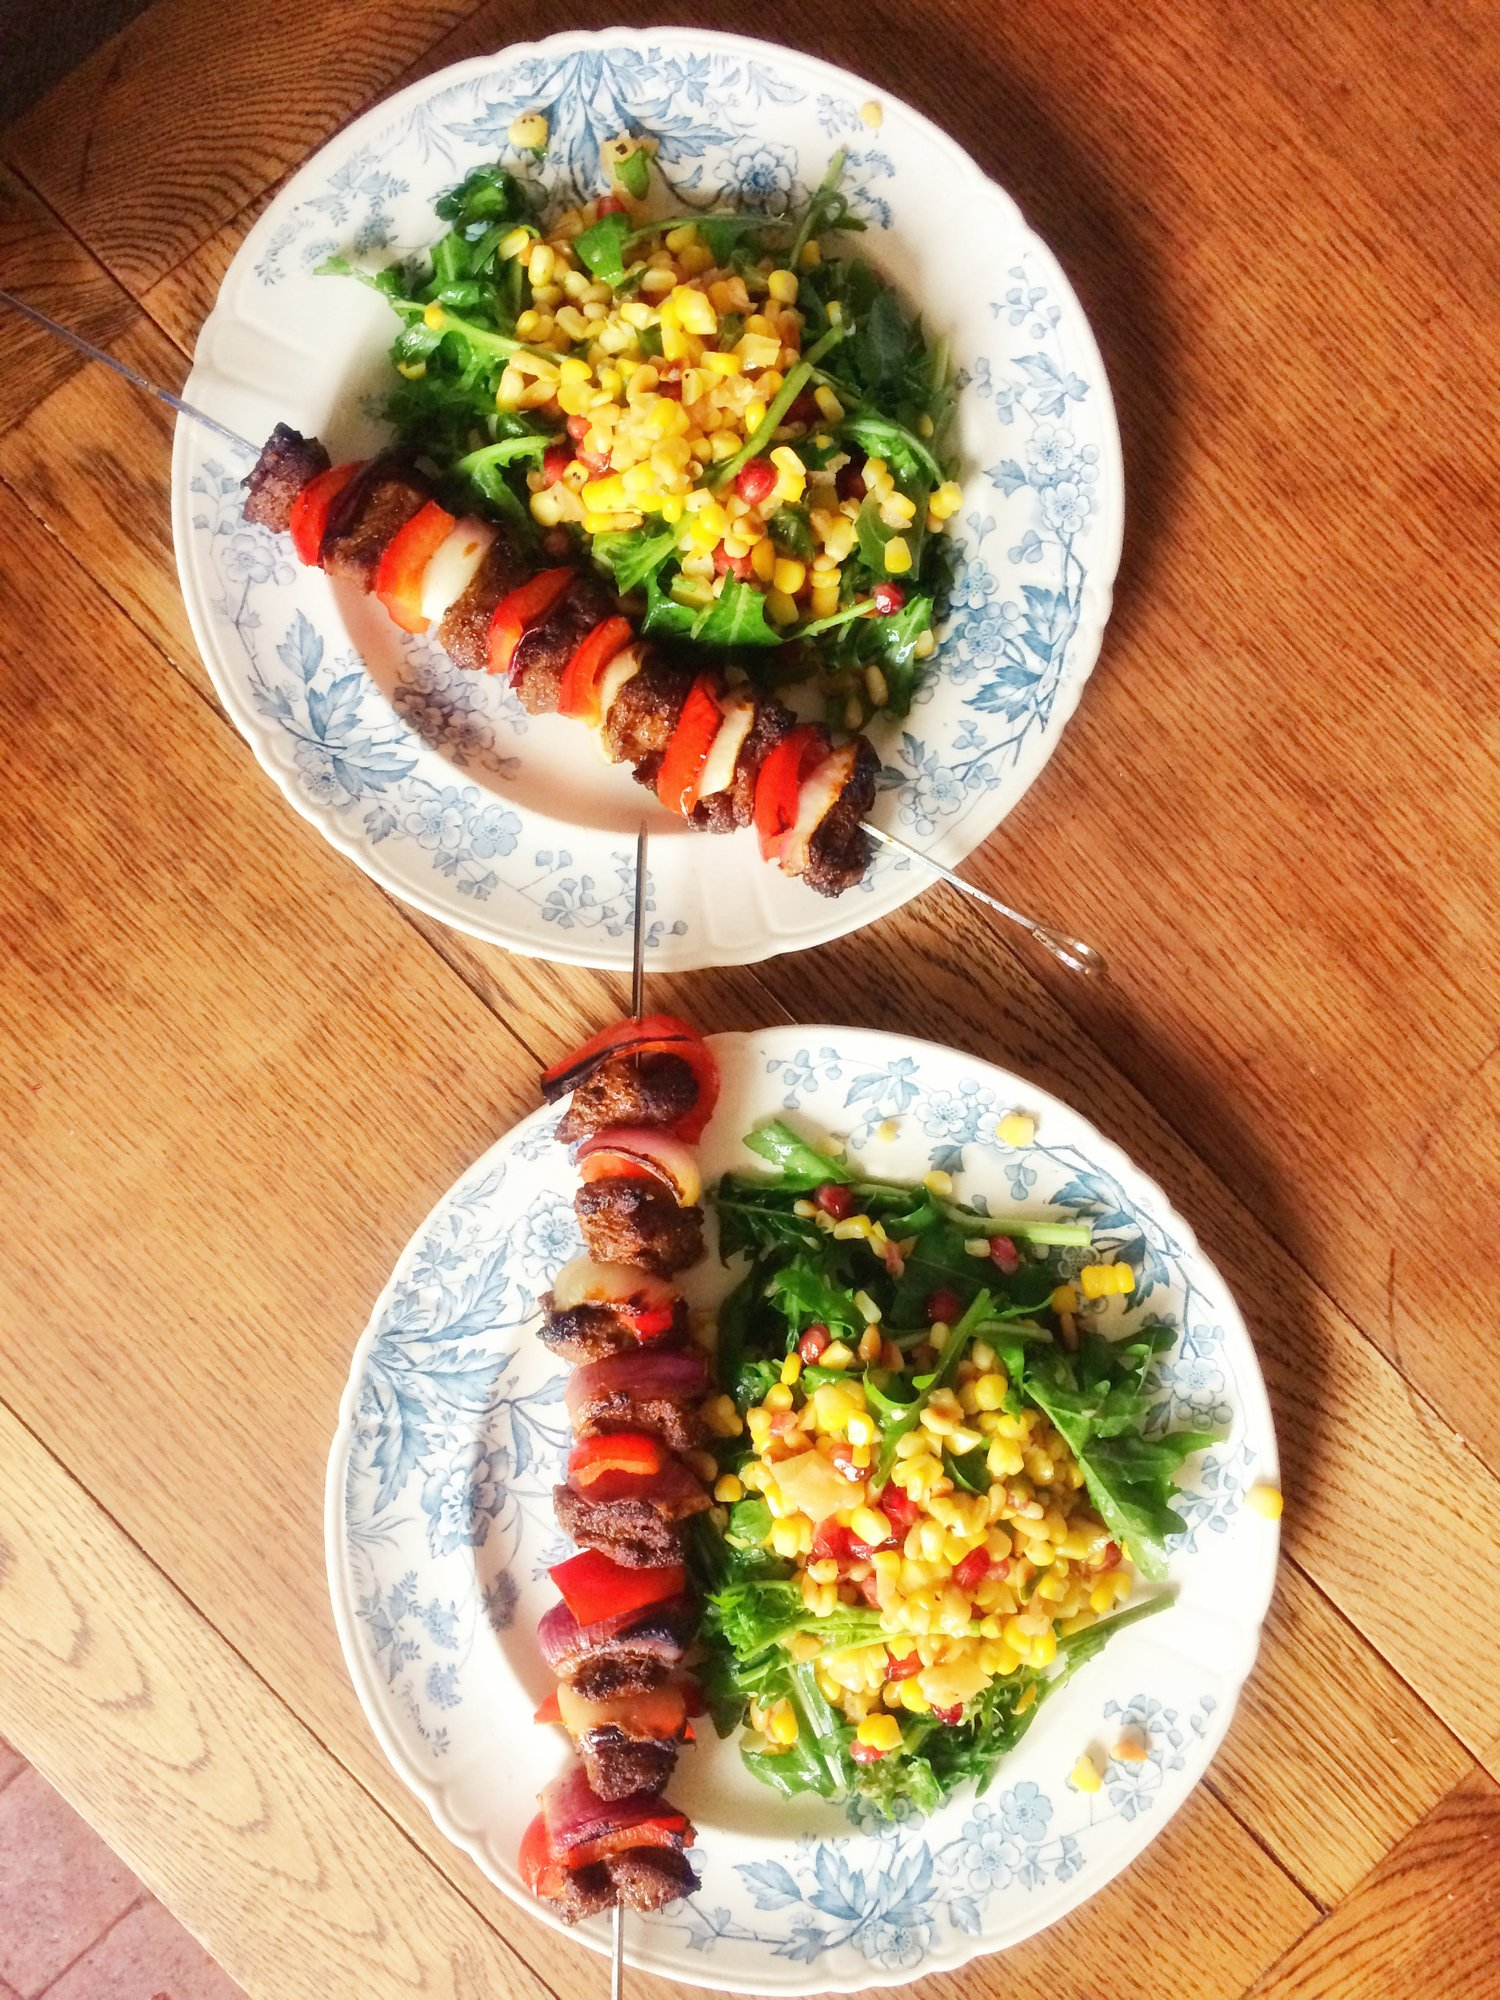 Sweetcorn and preserved lemon salad with lamb skewers - a fresh and filling meal from scratch in 20 mins!